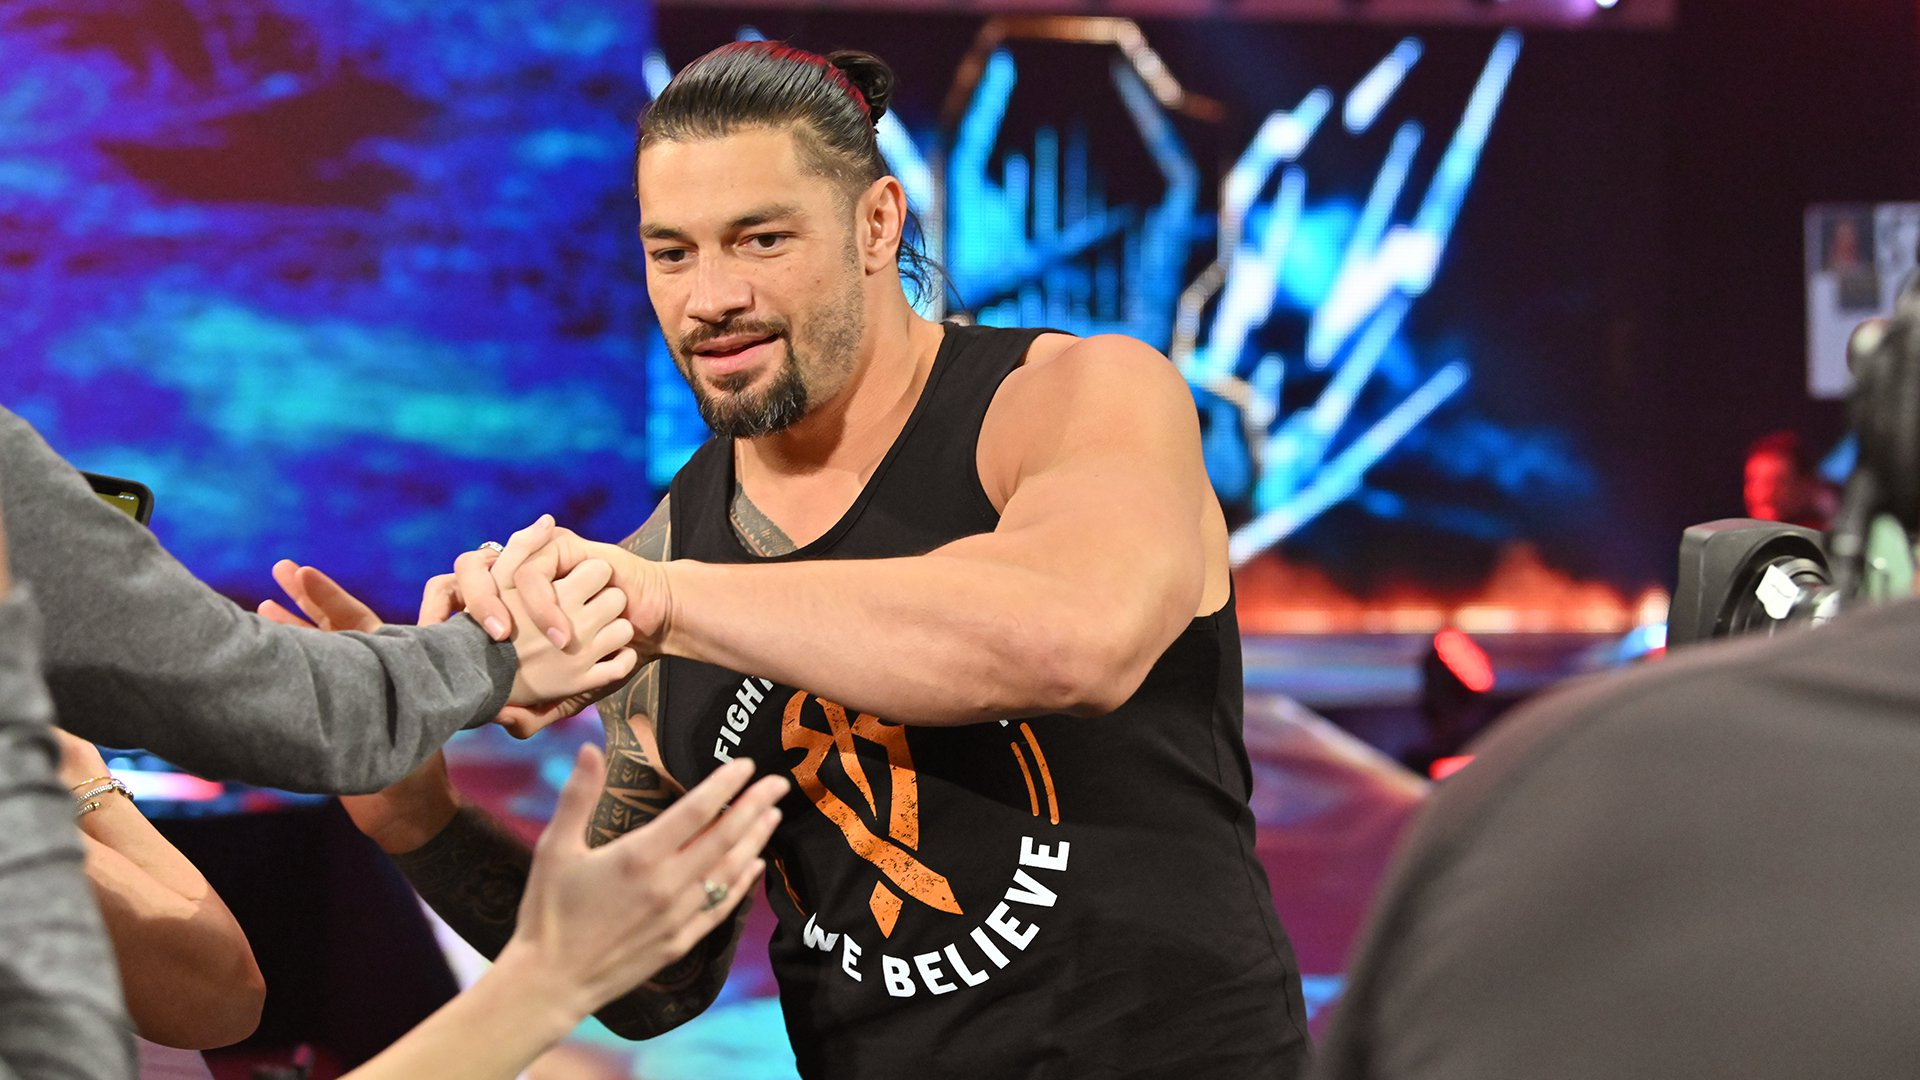 WWE's Roman Reigns returns from leukemia with a purpose